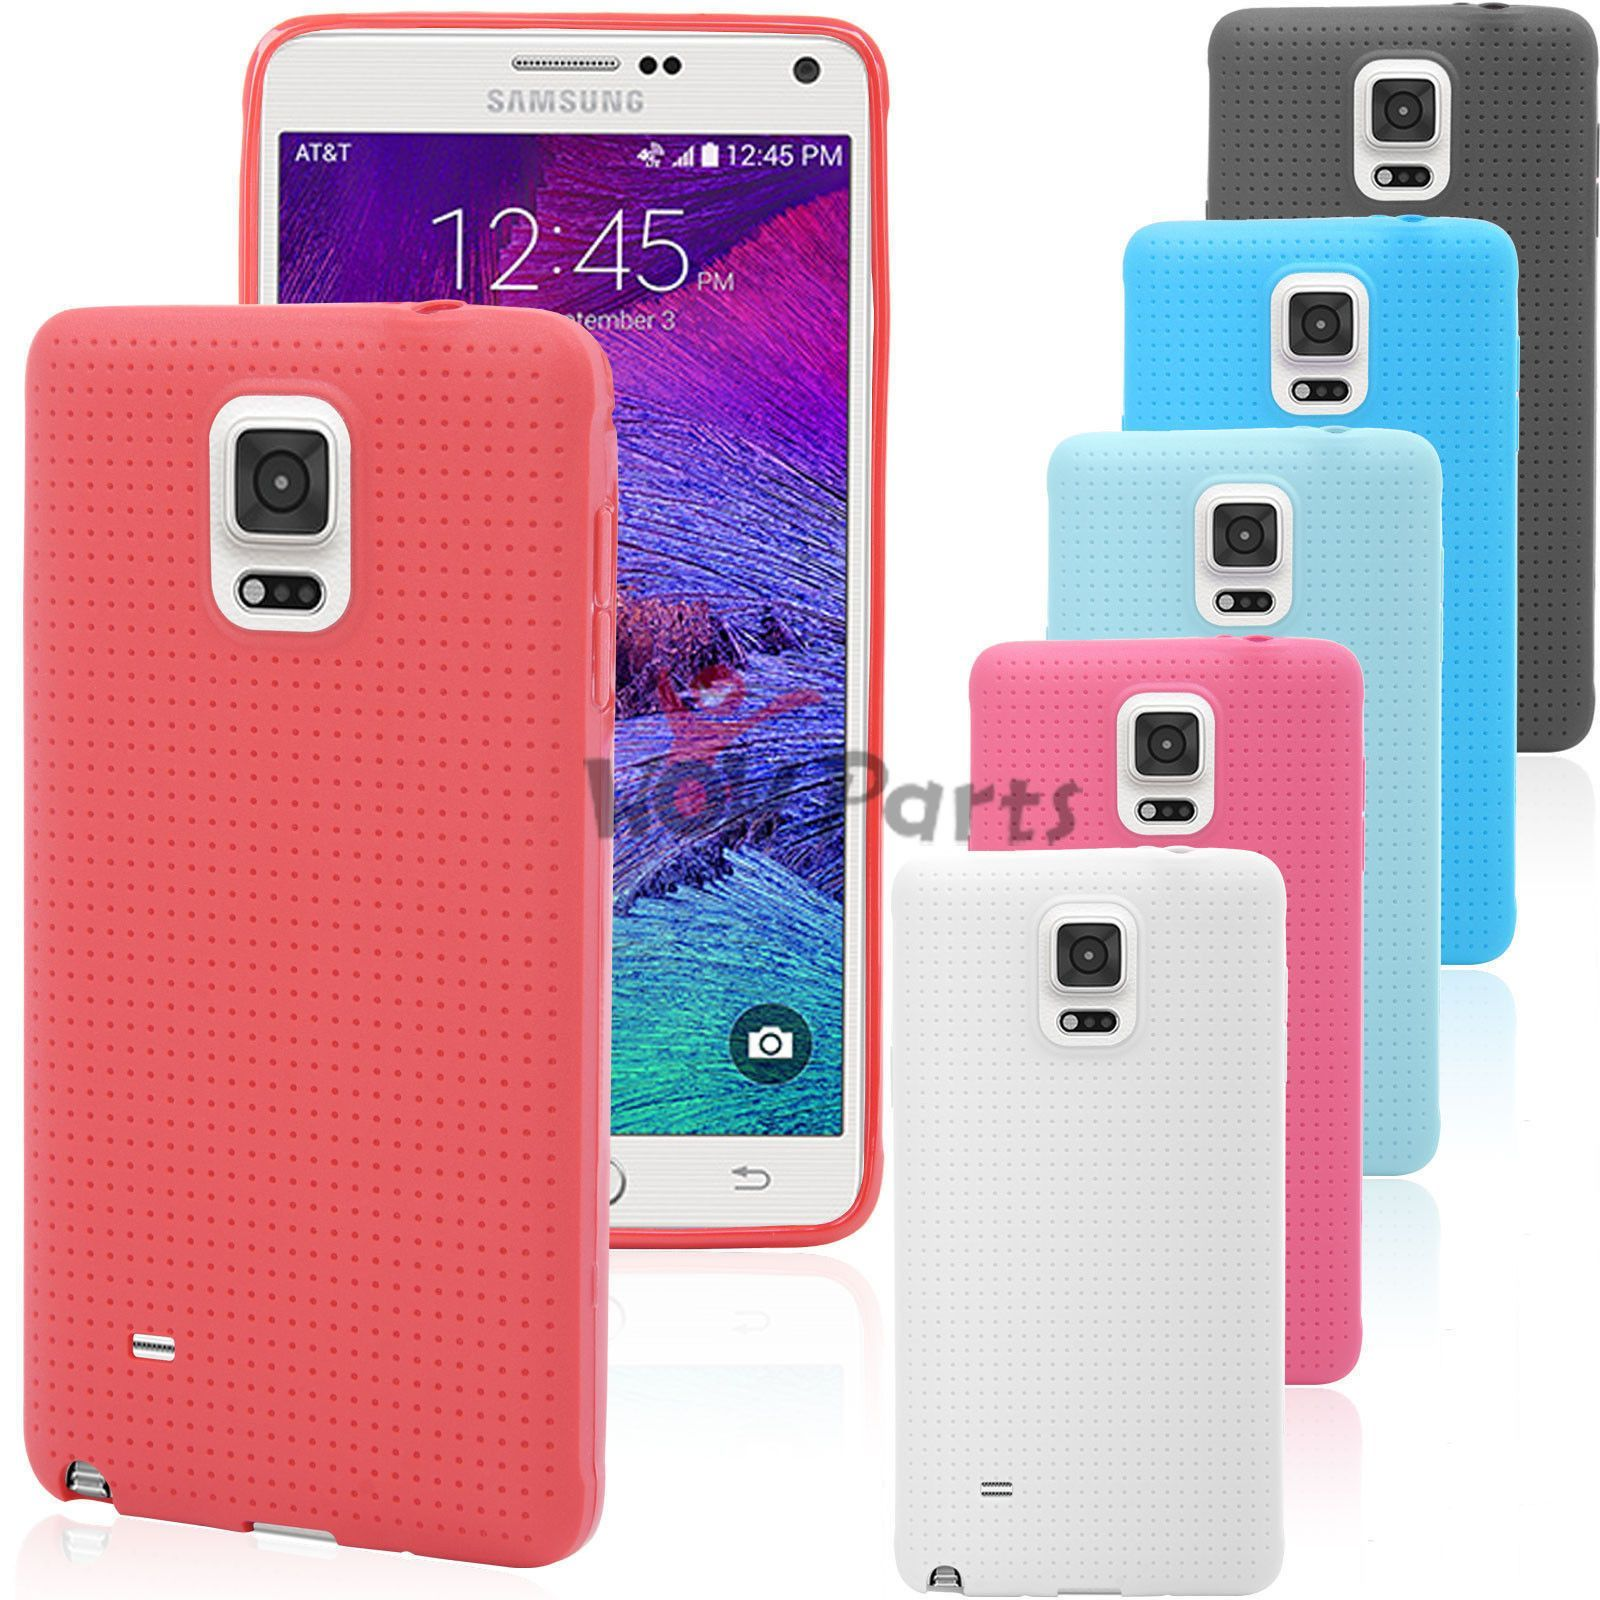 Samsung Galaxy Note 4 TPU Soft Silicone Gel Back Case Cover durable Skin Shell